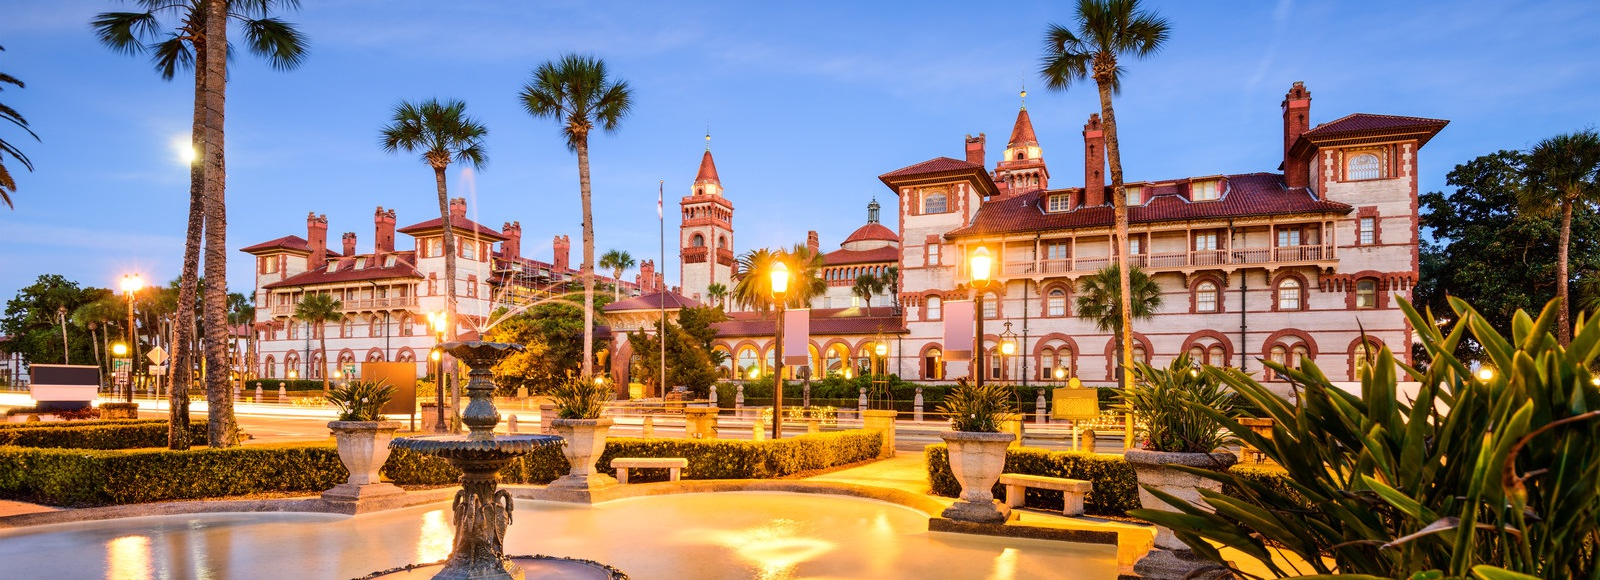 St. Augustine, Florida - Snowbird Destination Guide